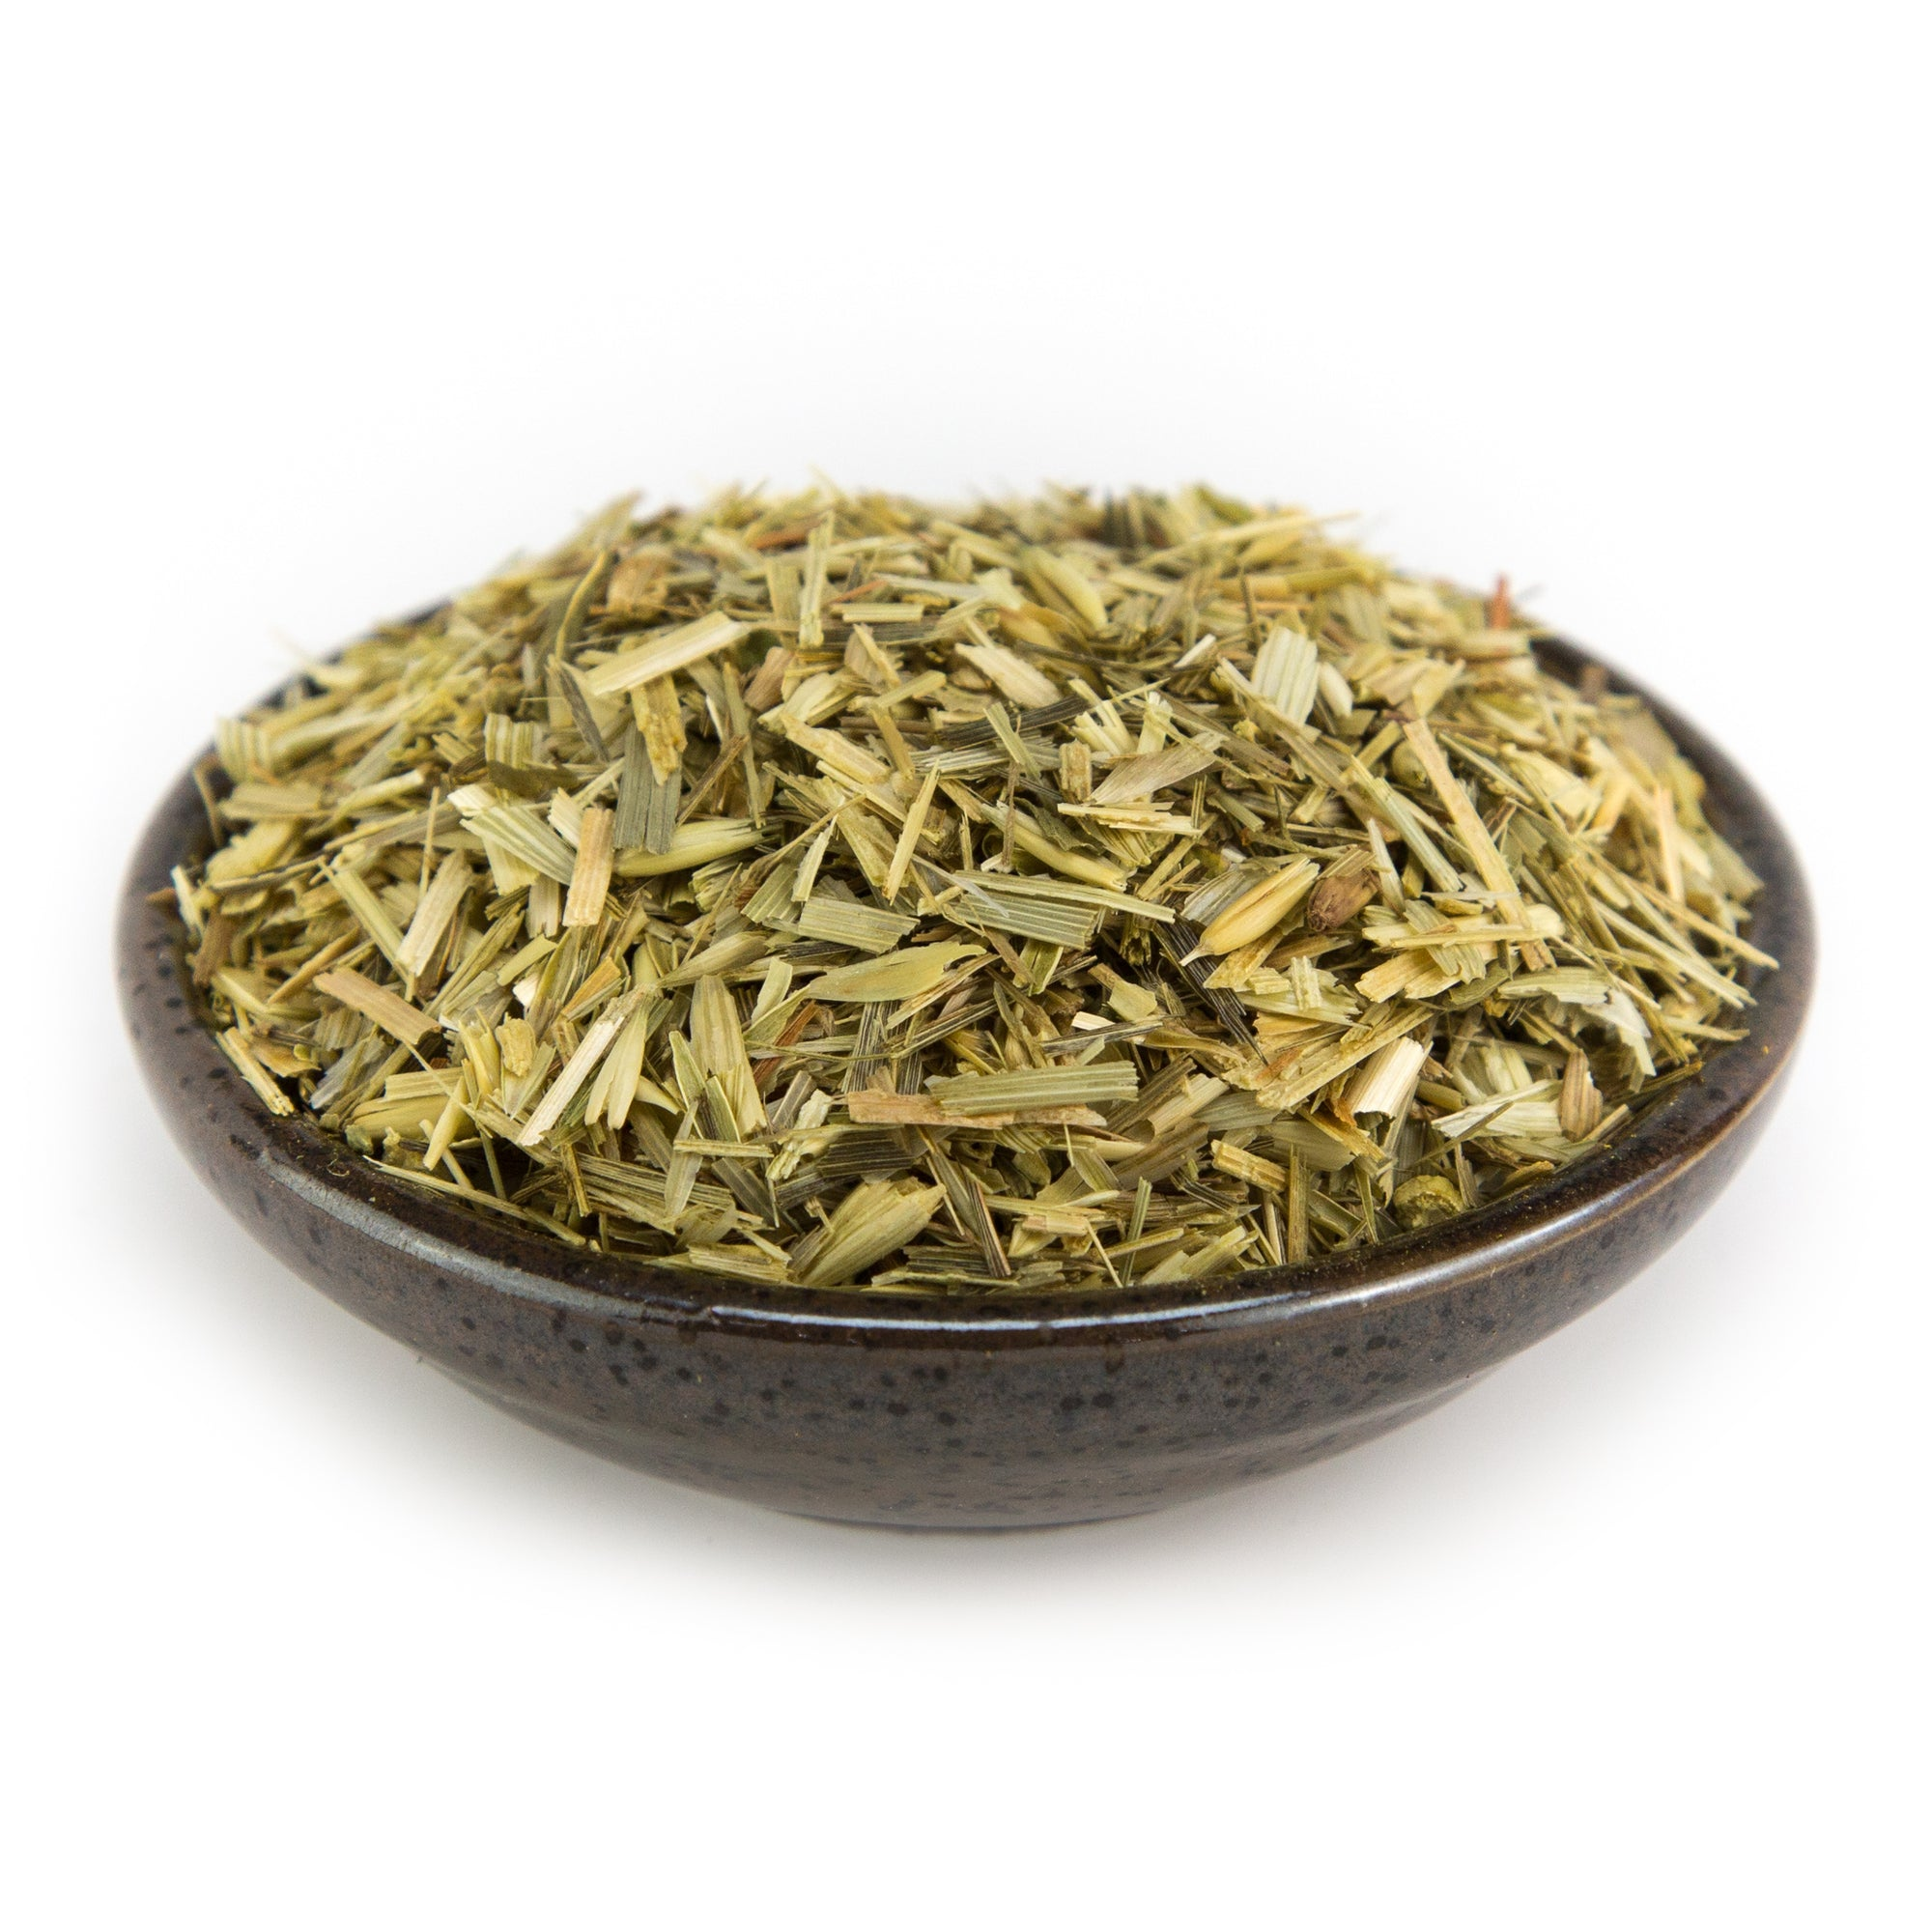 Oatstraw - Affordable_Tea - Red Stick Spice Company